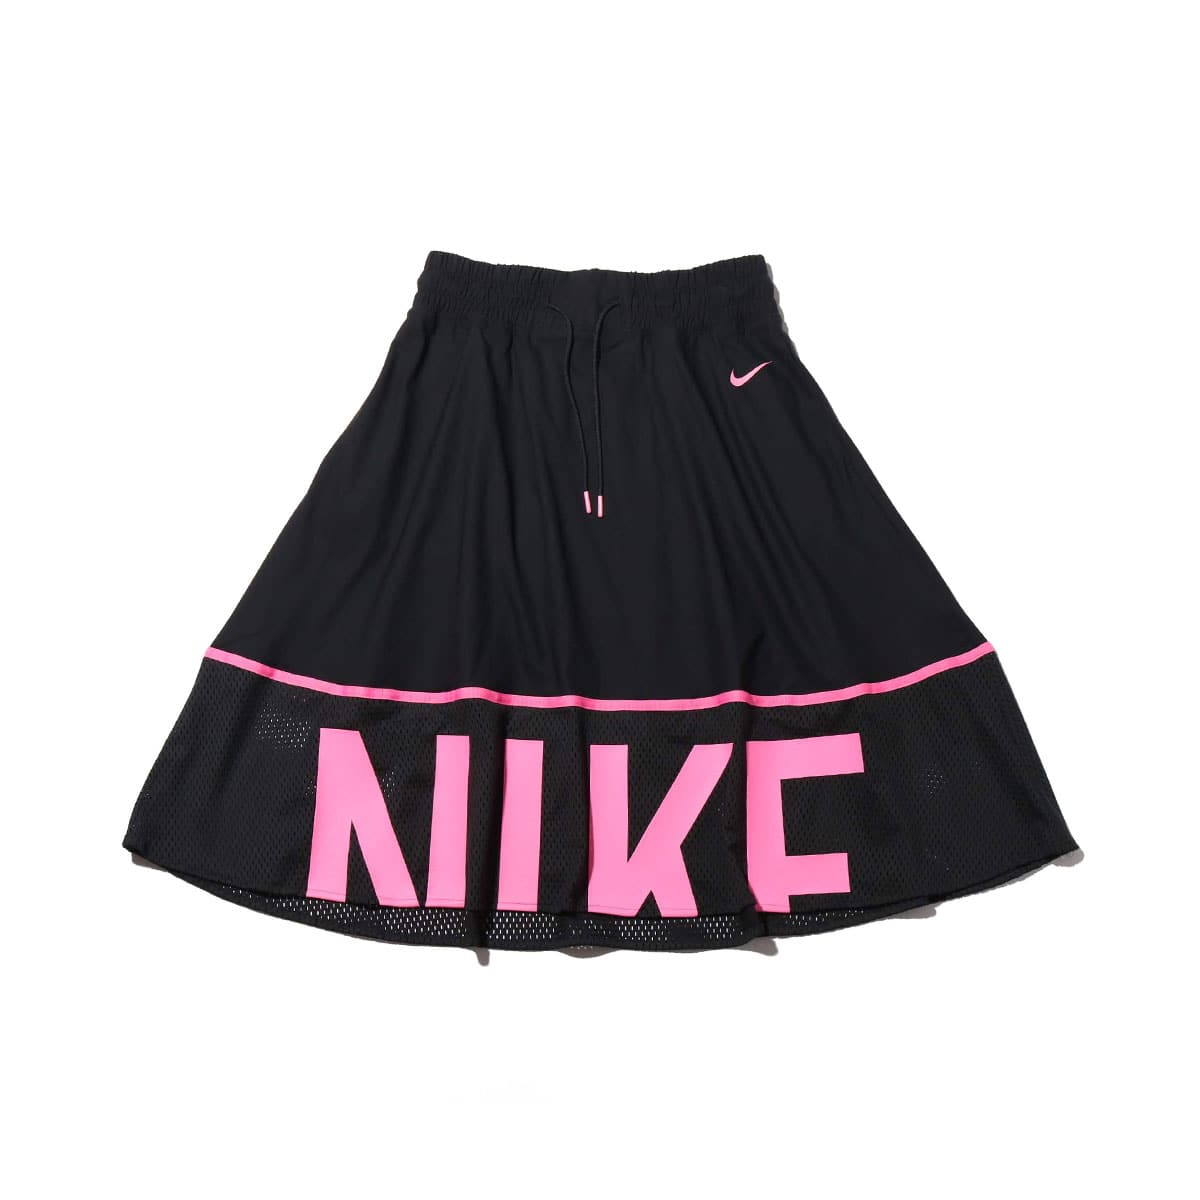 NIKE AS W NSW SKIRT MESH BLACK/LOTUS PINK/LOTUS PINK 20SP-S_photo_large